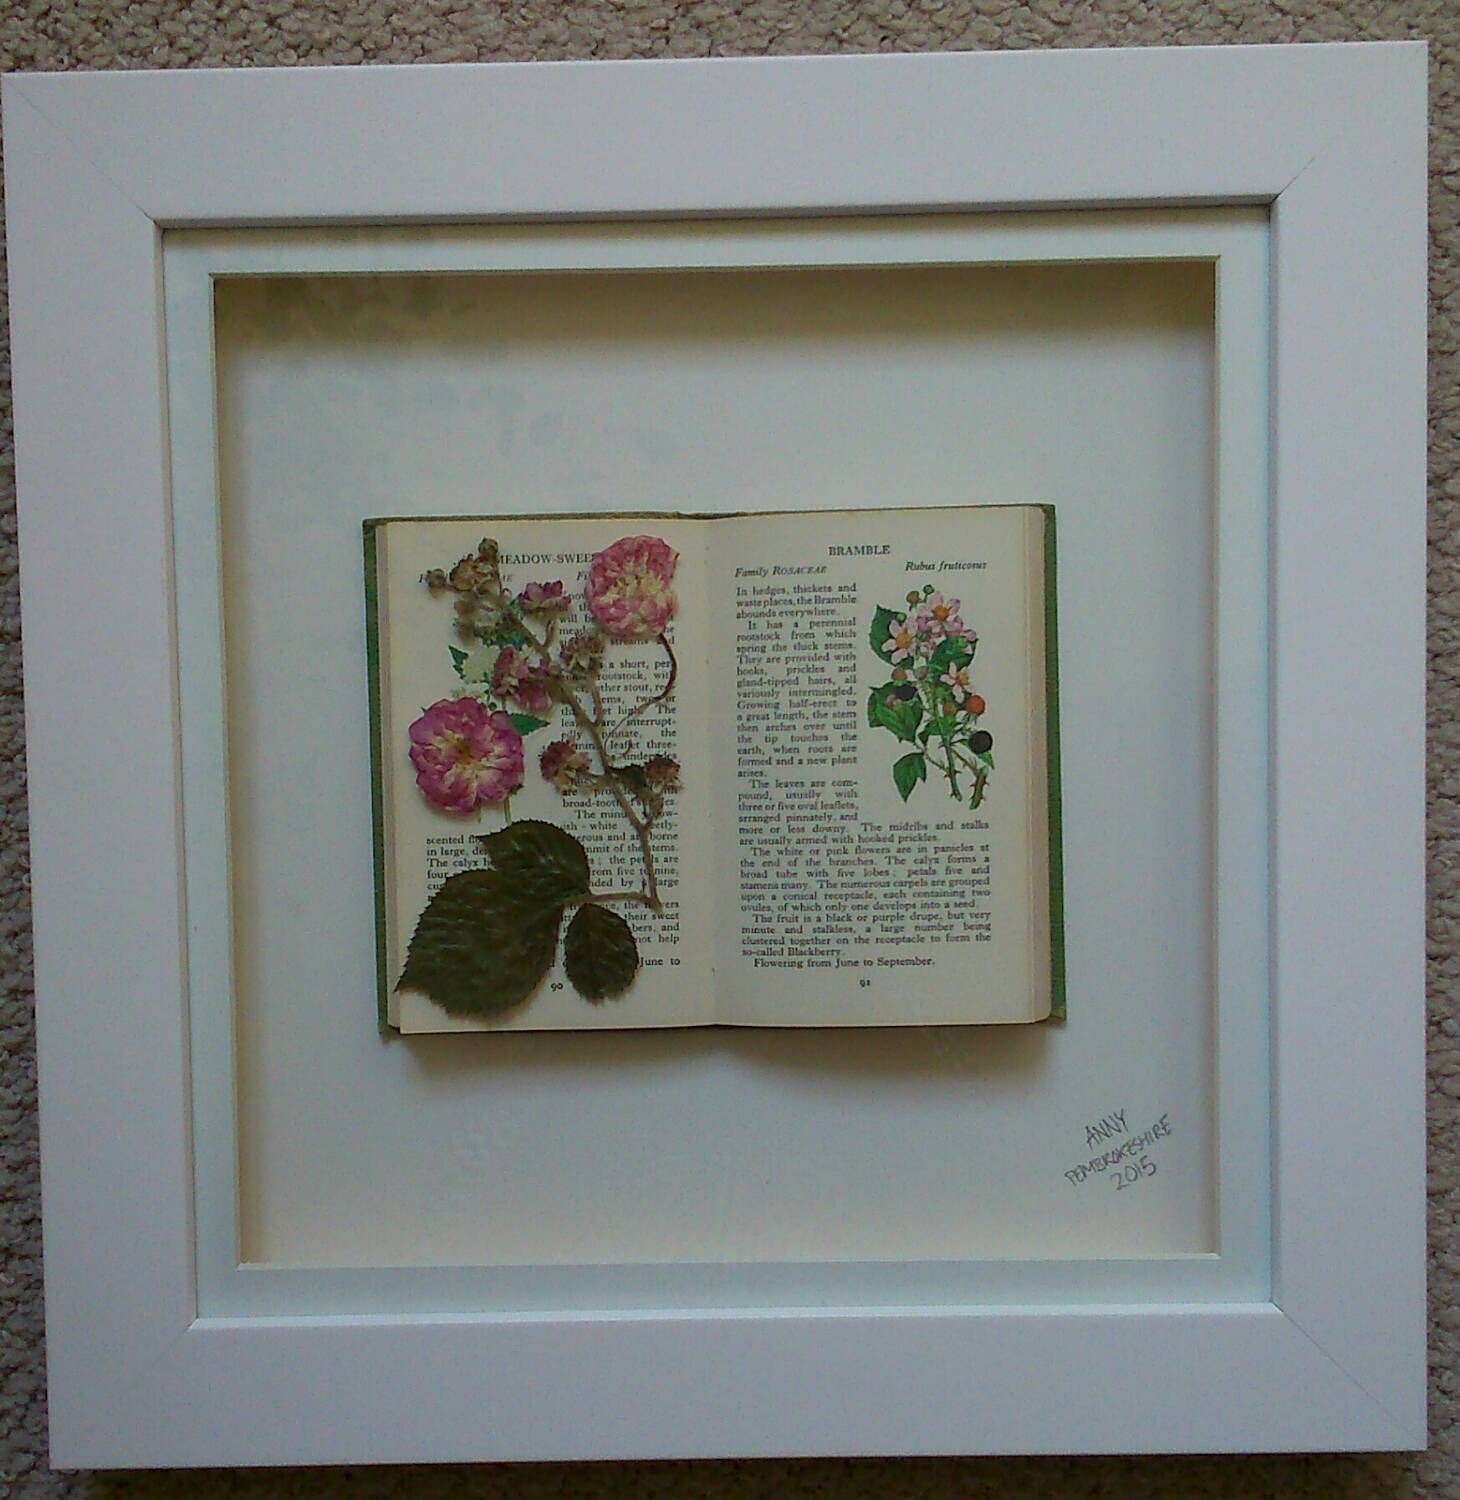 3D Framed Pressed Flower Artwork Roses And Brambles With Vintage